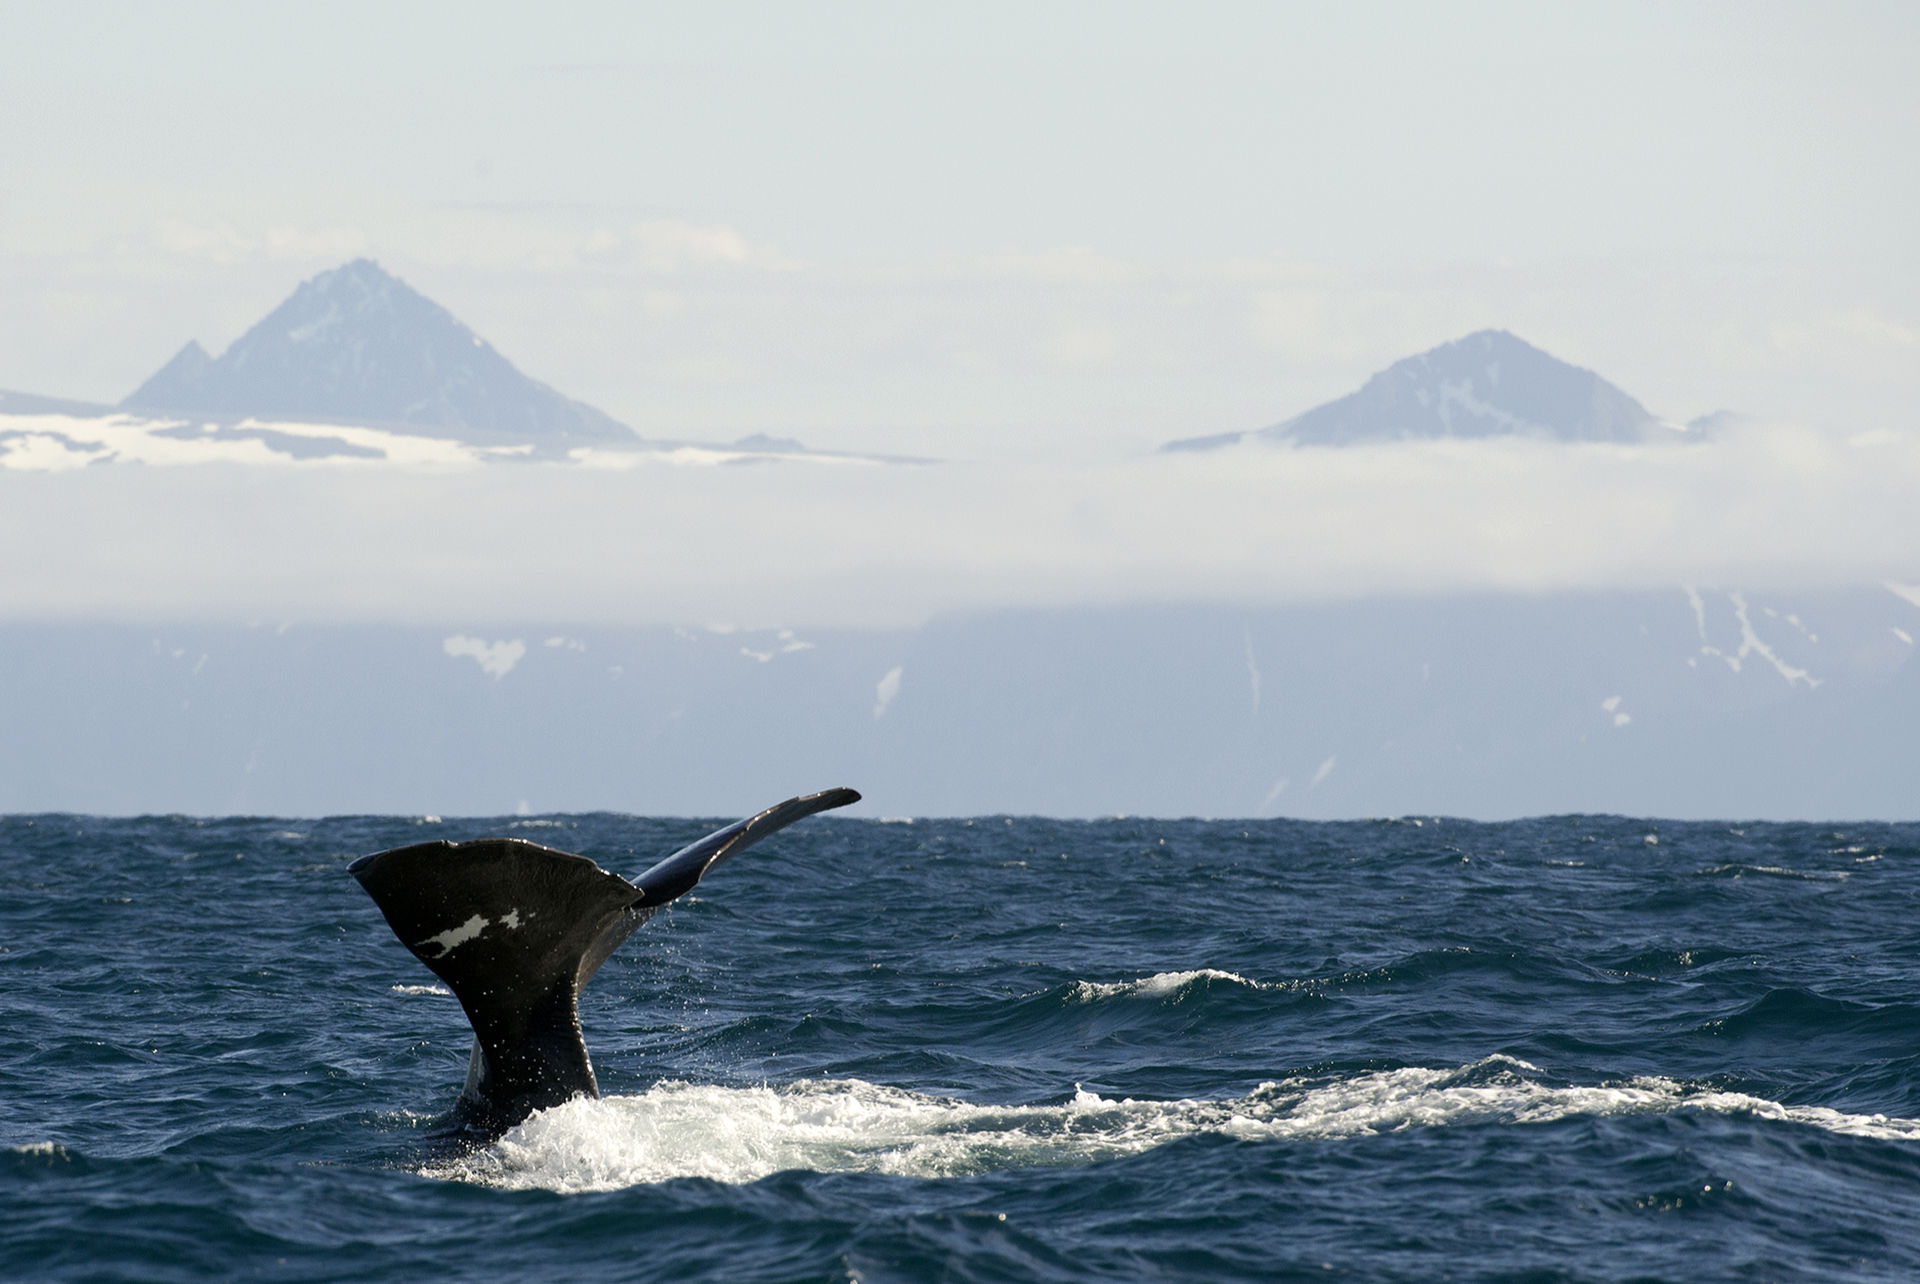 Whales outside of Andøya © Marten Bril